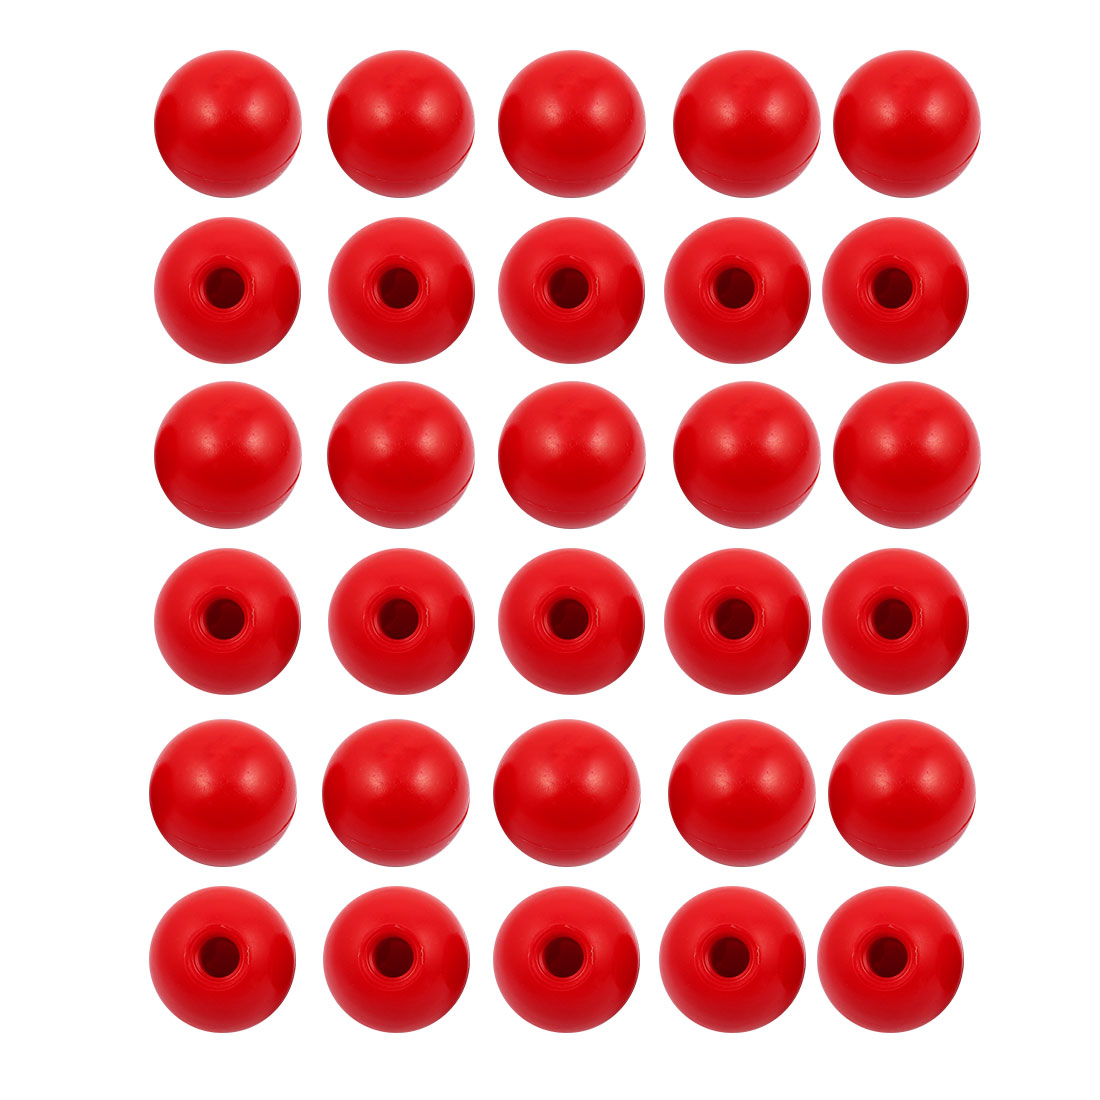 30 Pcs M12 x 40mm Plastic Ball Machine Tool Accessories Console Handle Red